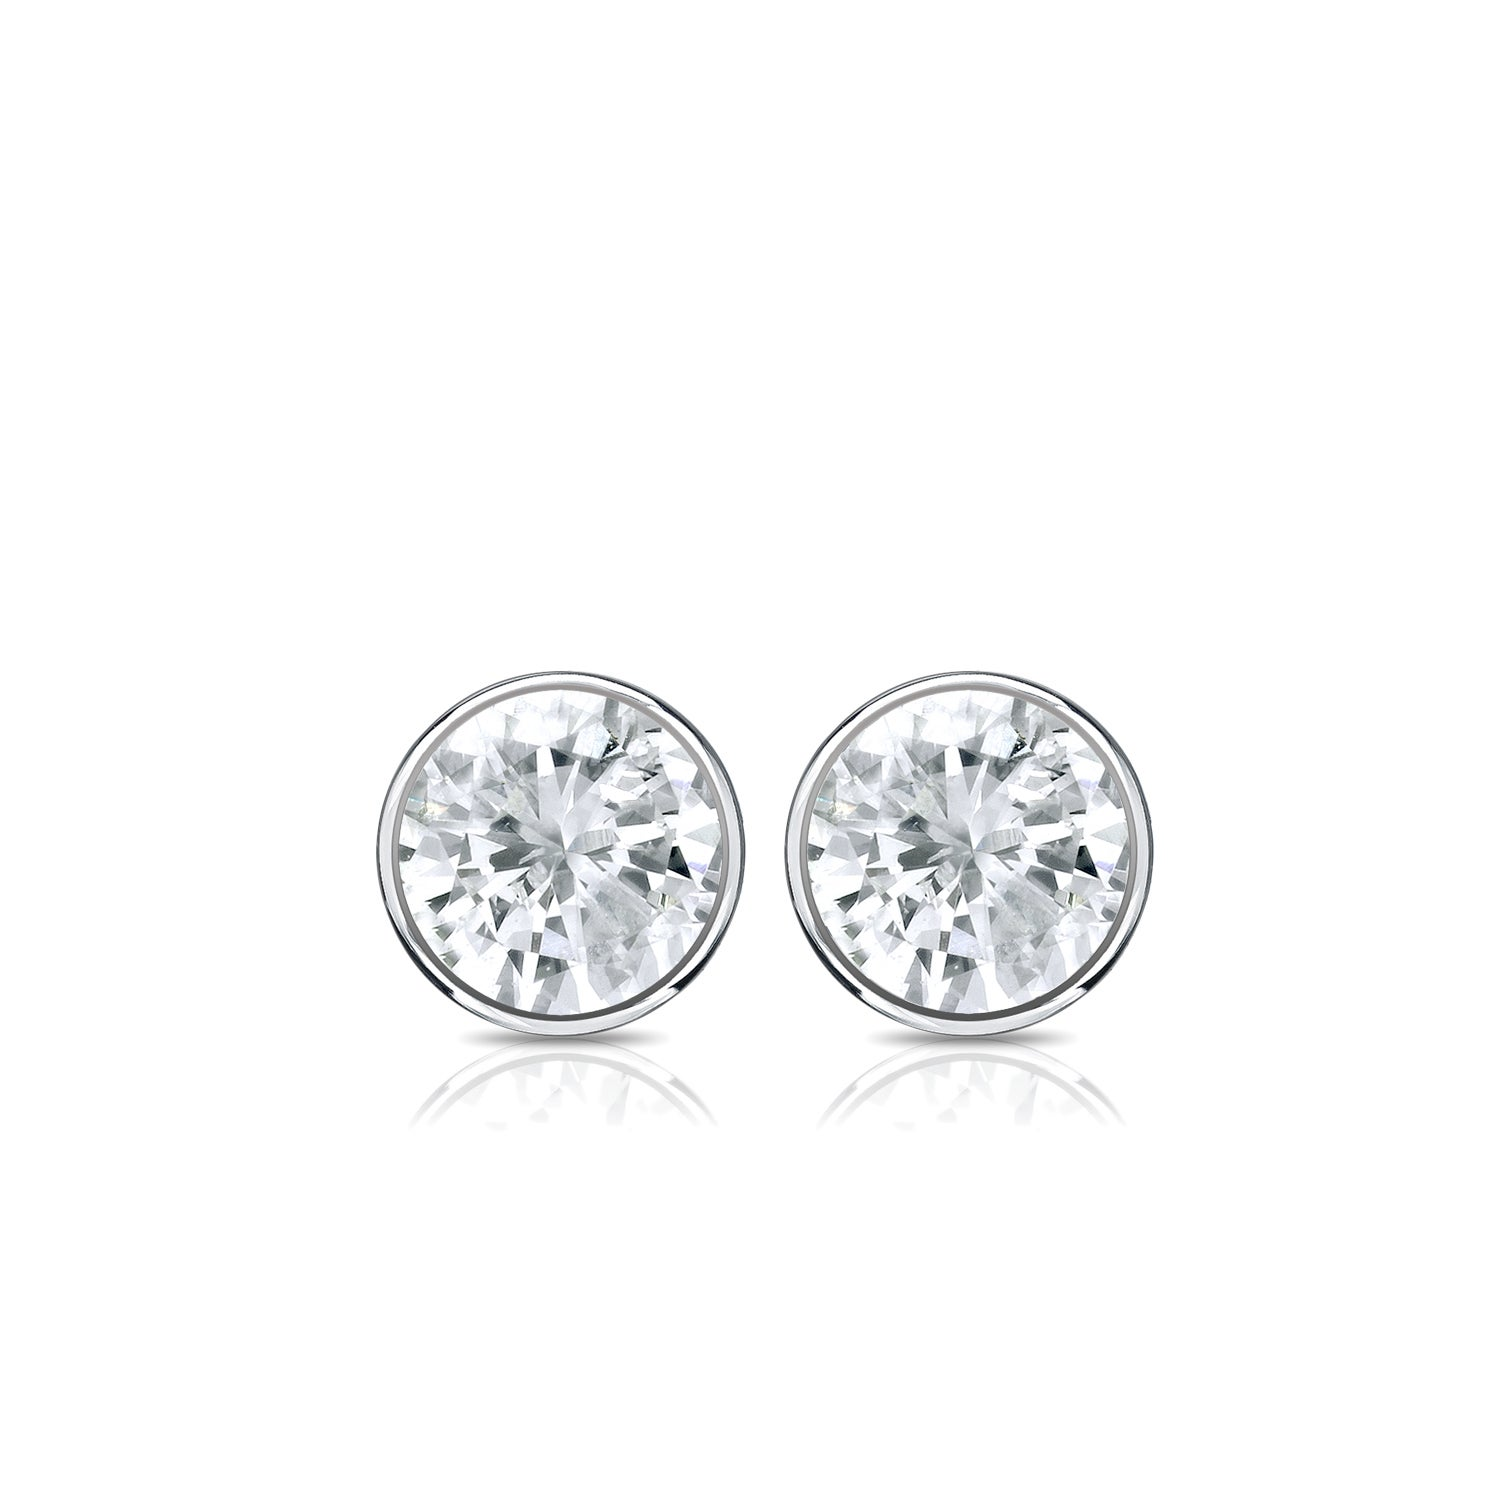 Shop Platinum 1 3ct TDW Round Bezel Diamond Stud Earrings by Auriya